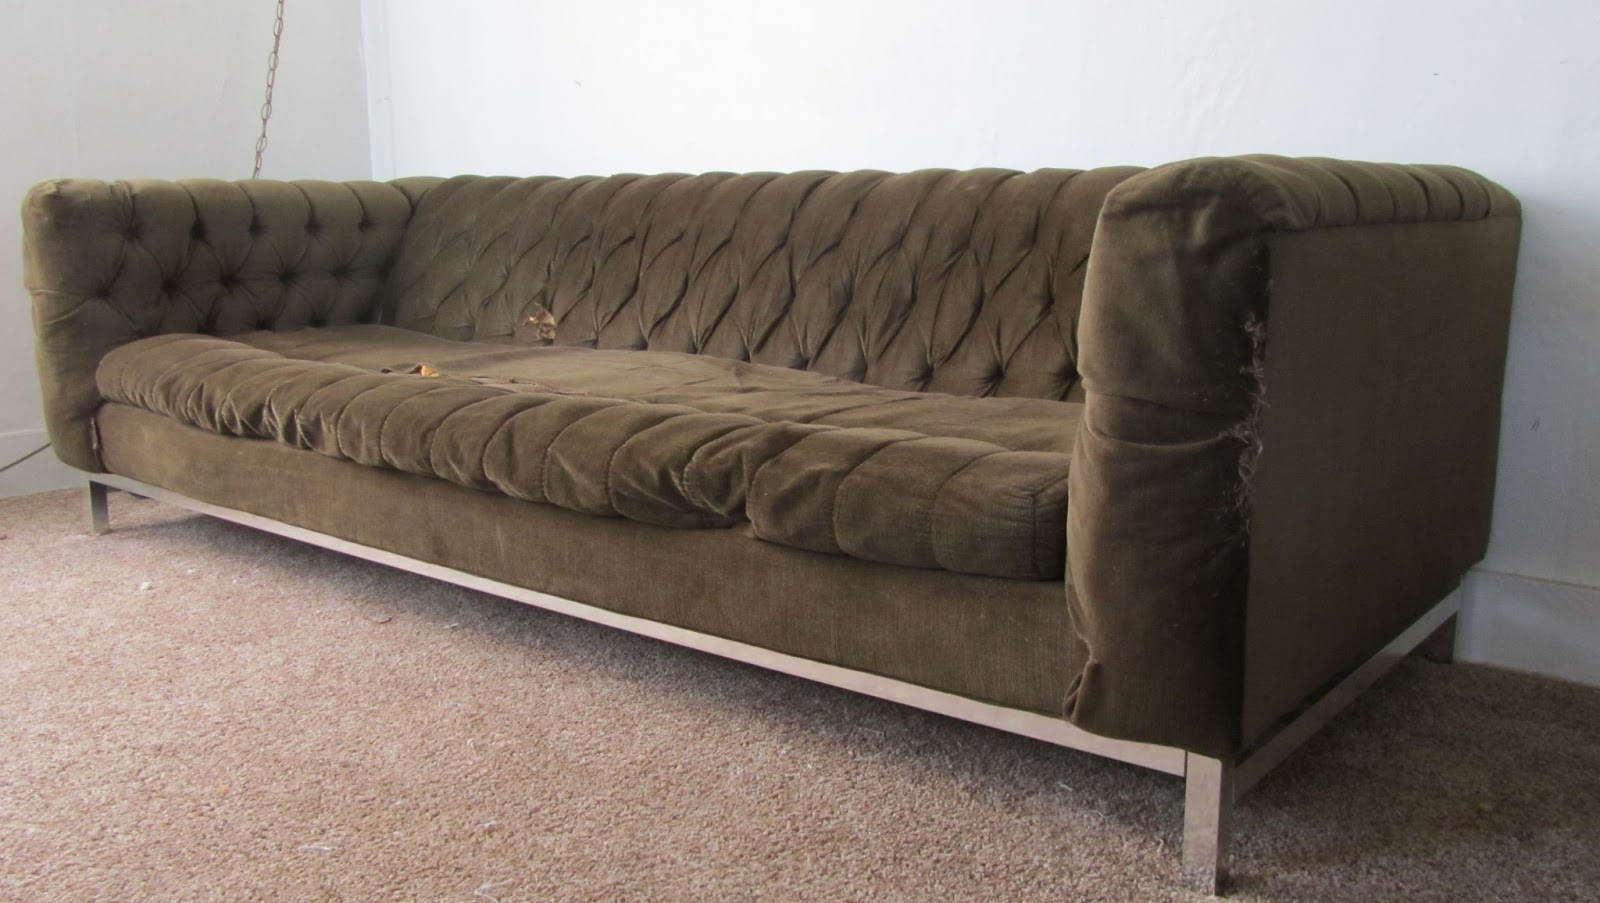 Here Is A Picture Of The Sofa Shortly After Getting It Home. It Was  Certainly Saggy Looking But Full Of Promise.